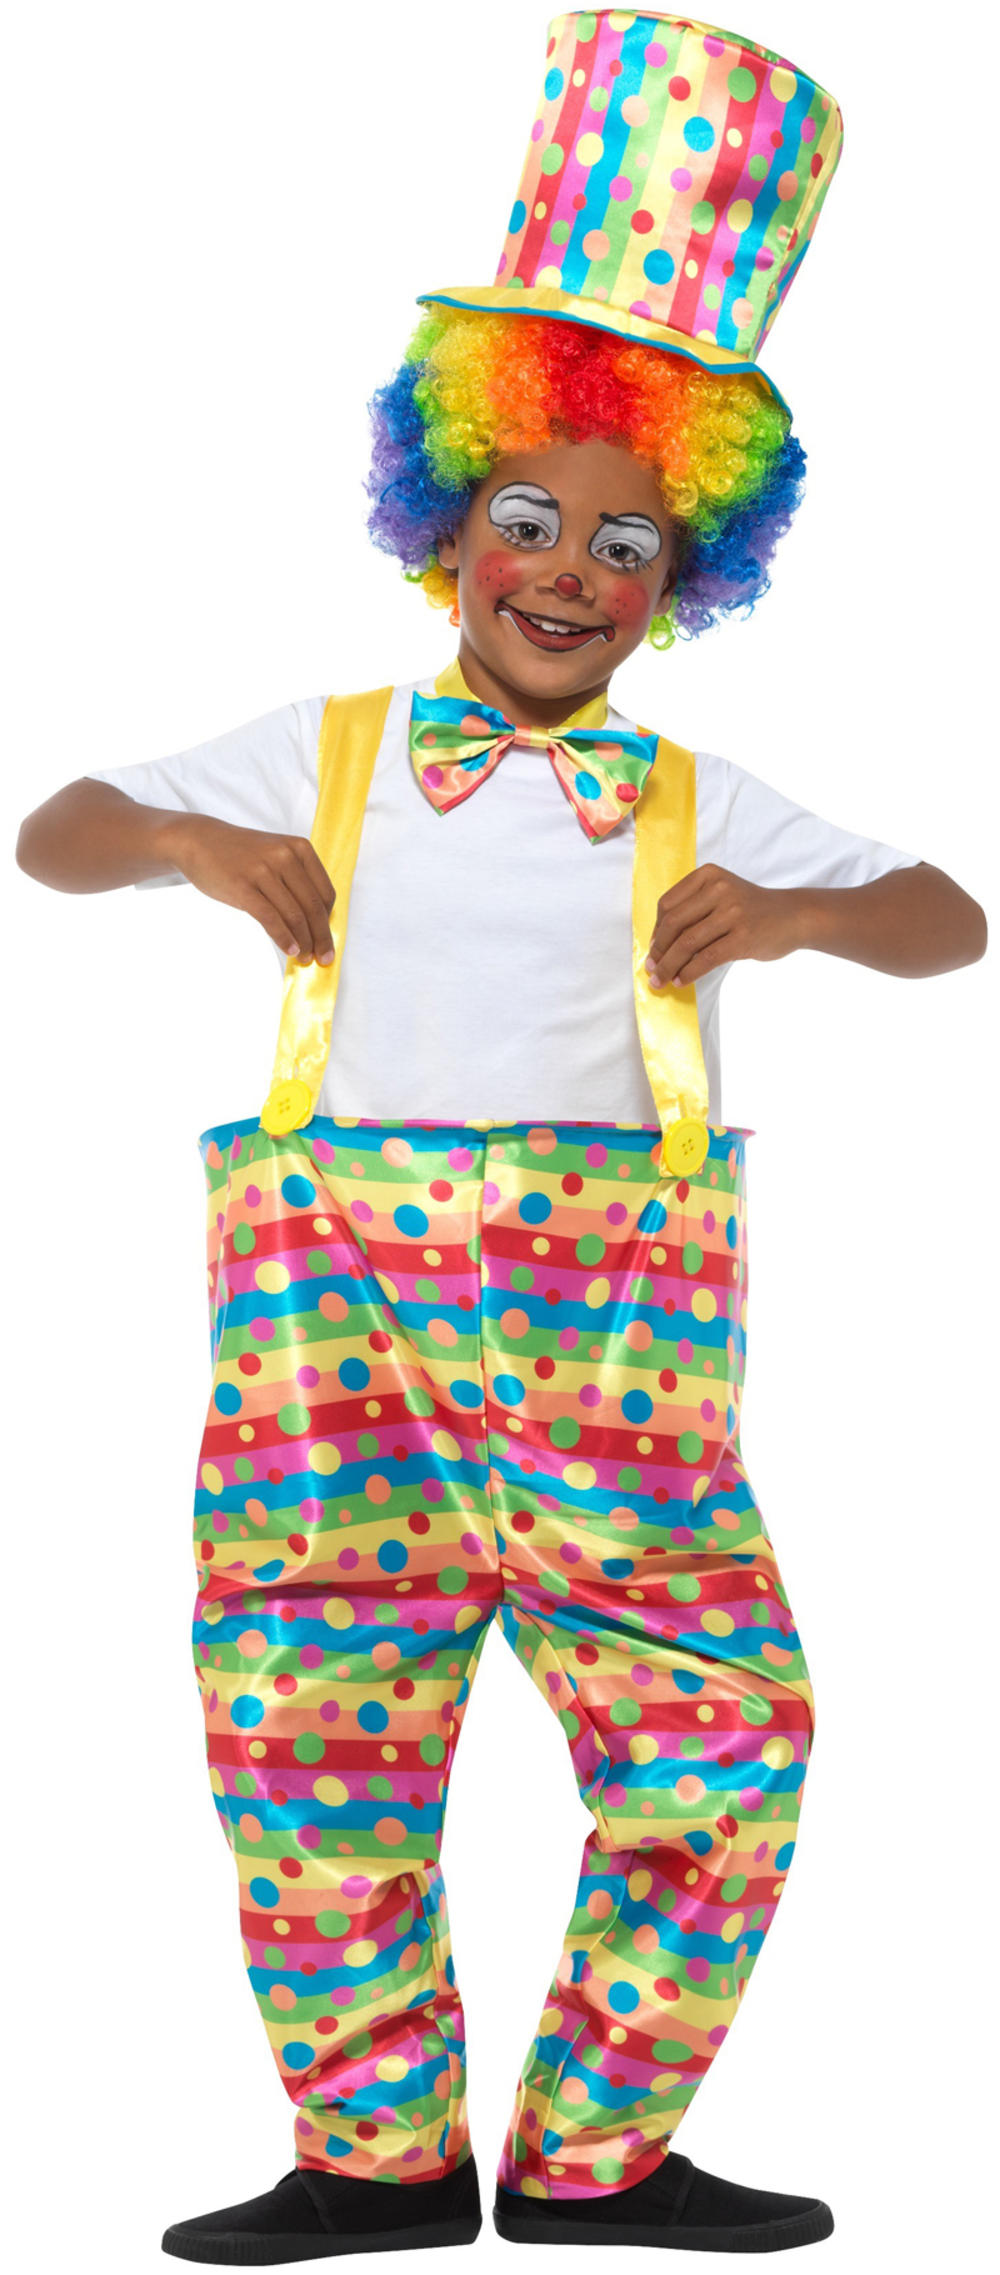 Funny Clown Boys Fancy Dress Circus Carnival Rainbow Kids Novelty Costume Outfit